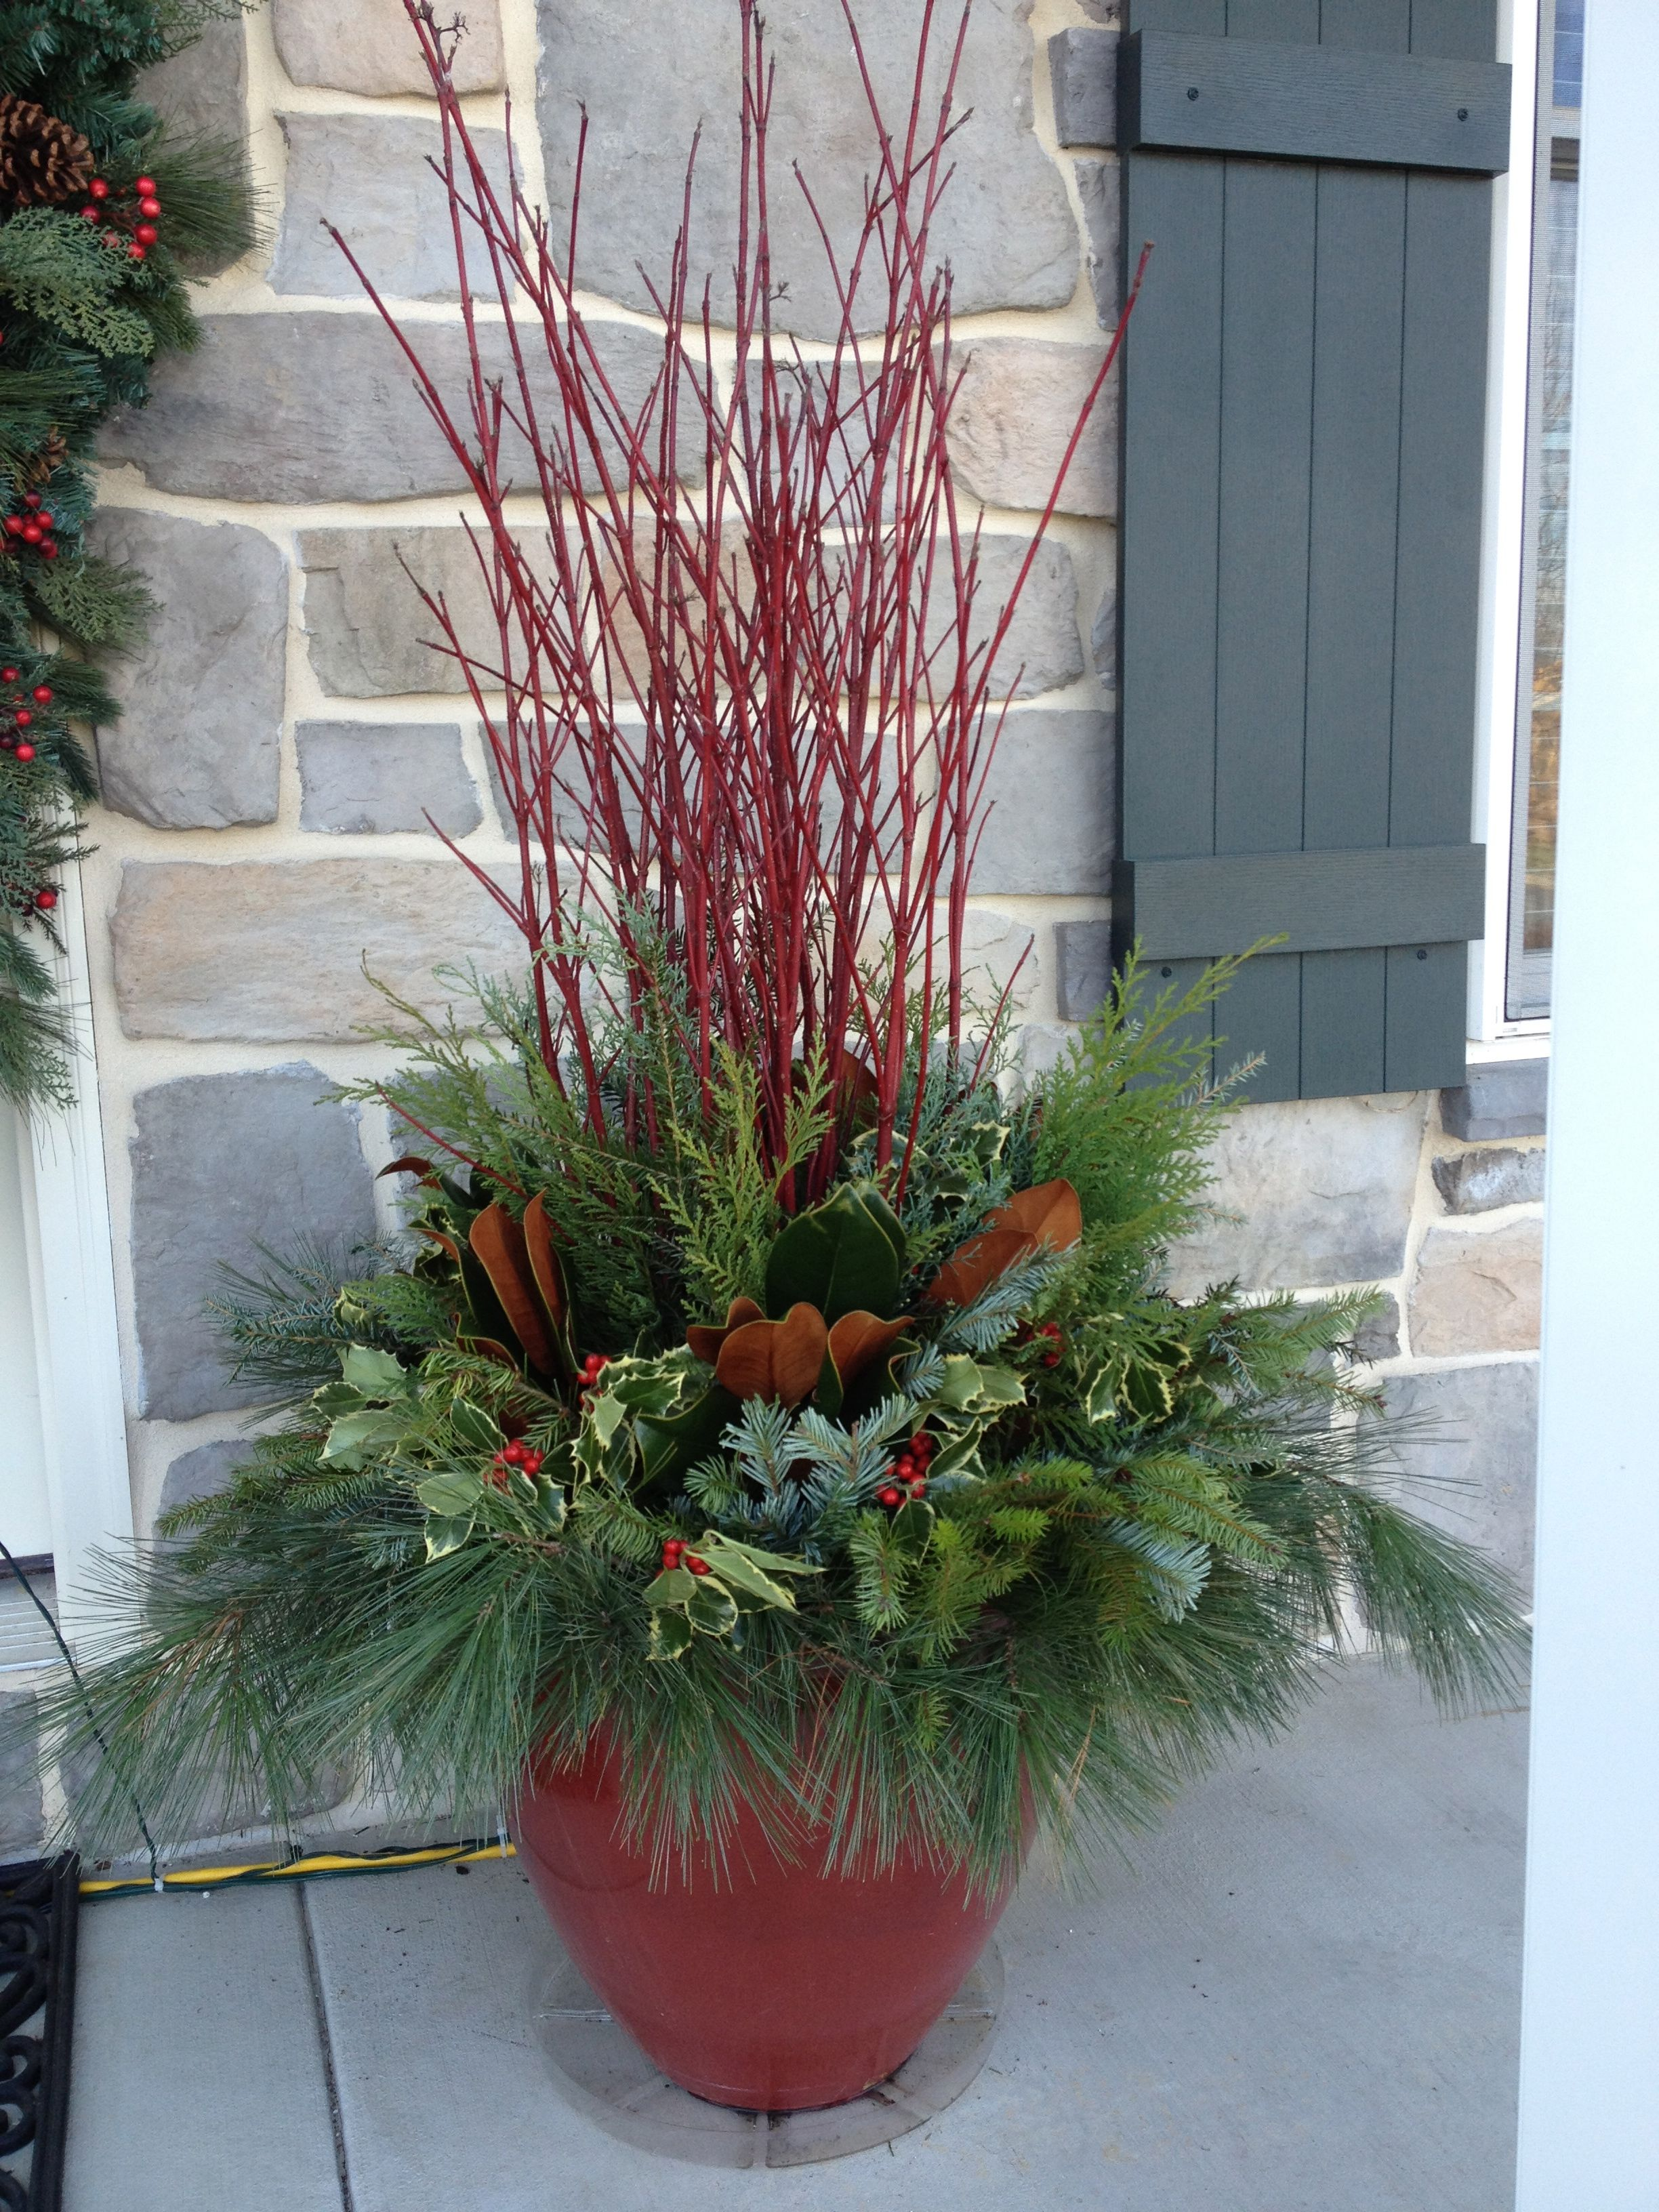 Winter Christmas Container Garden Red Pot Red Twig